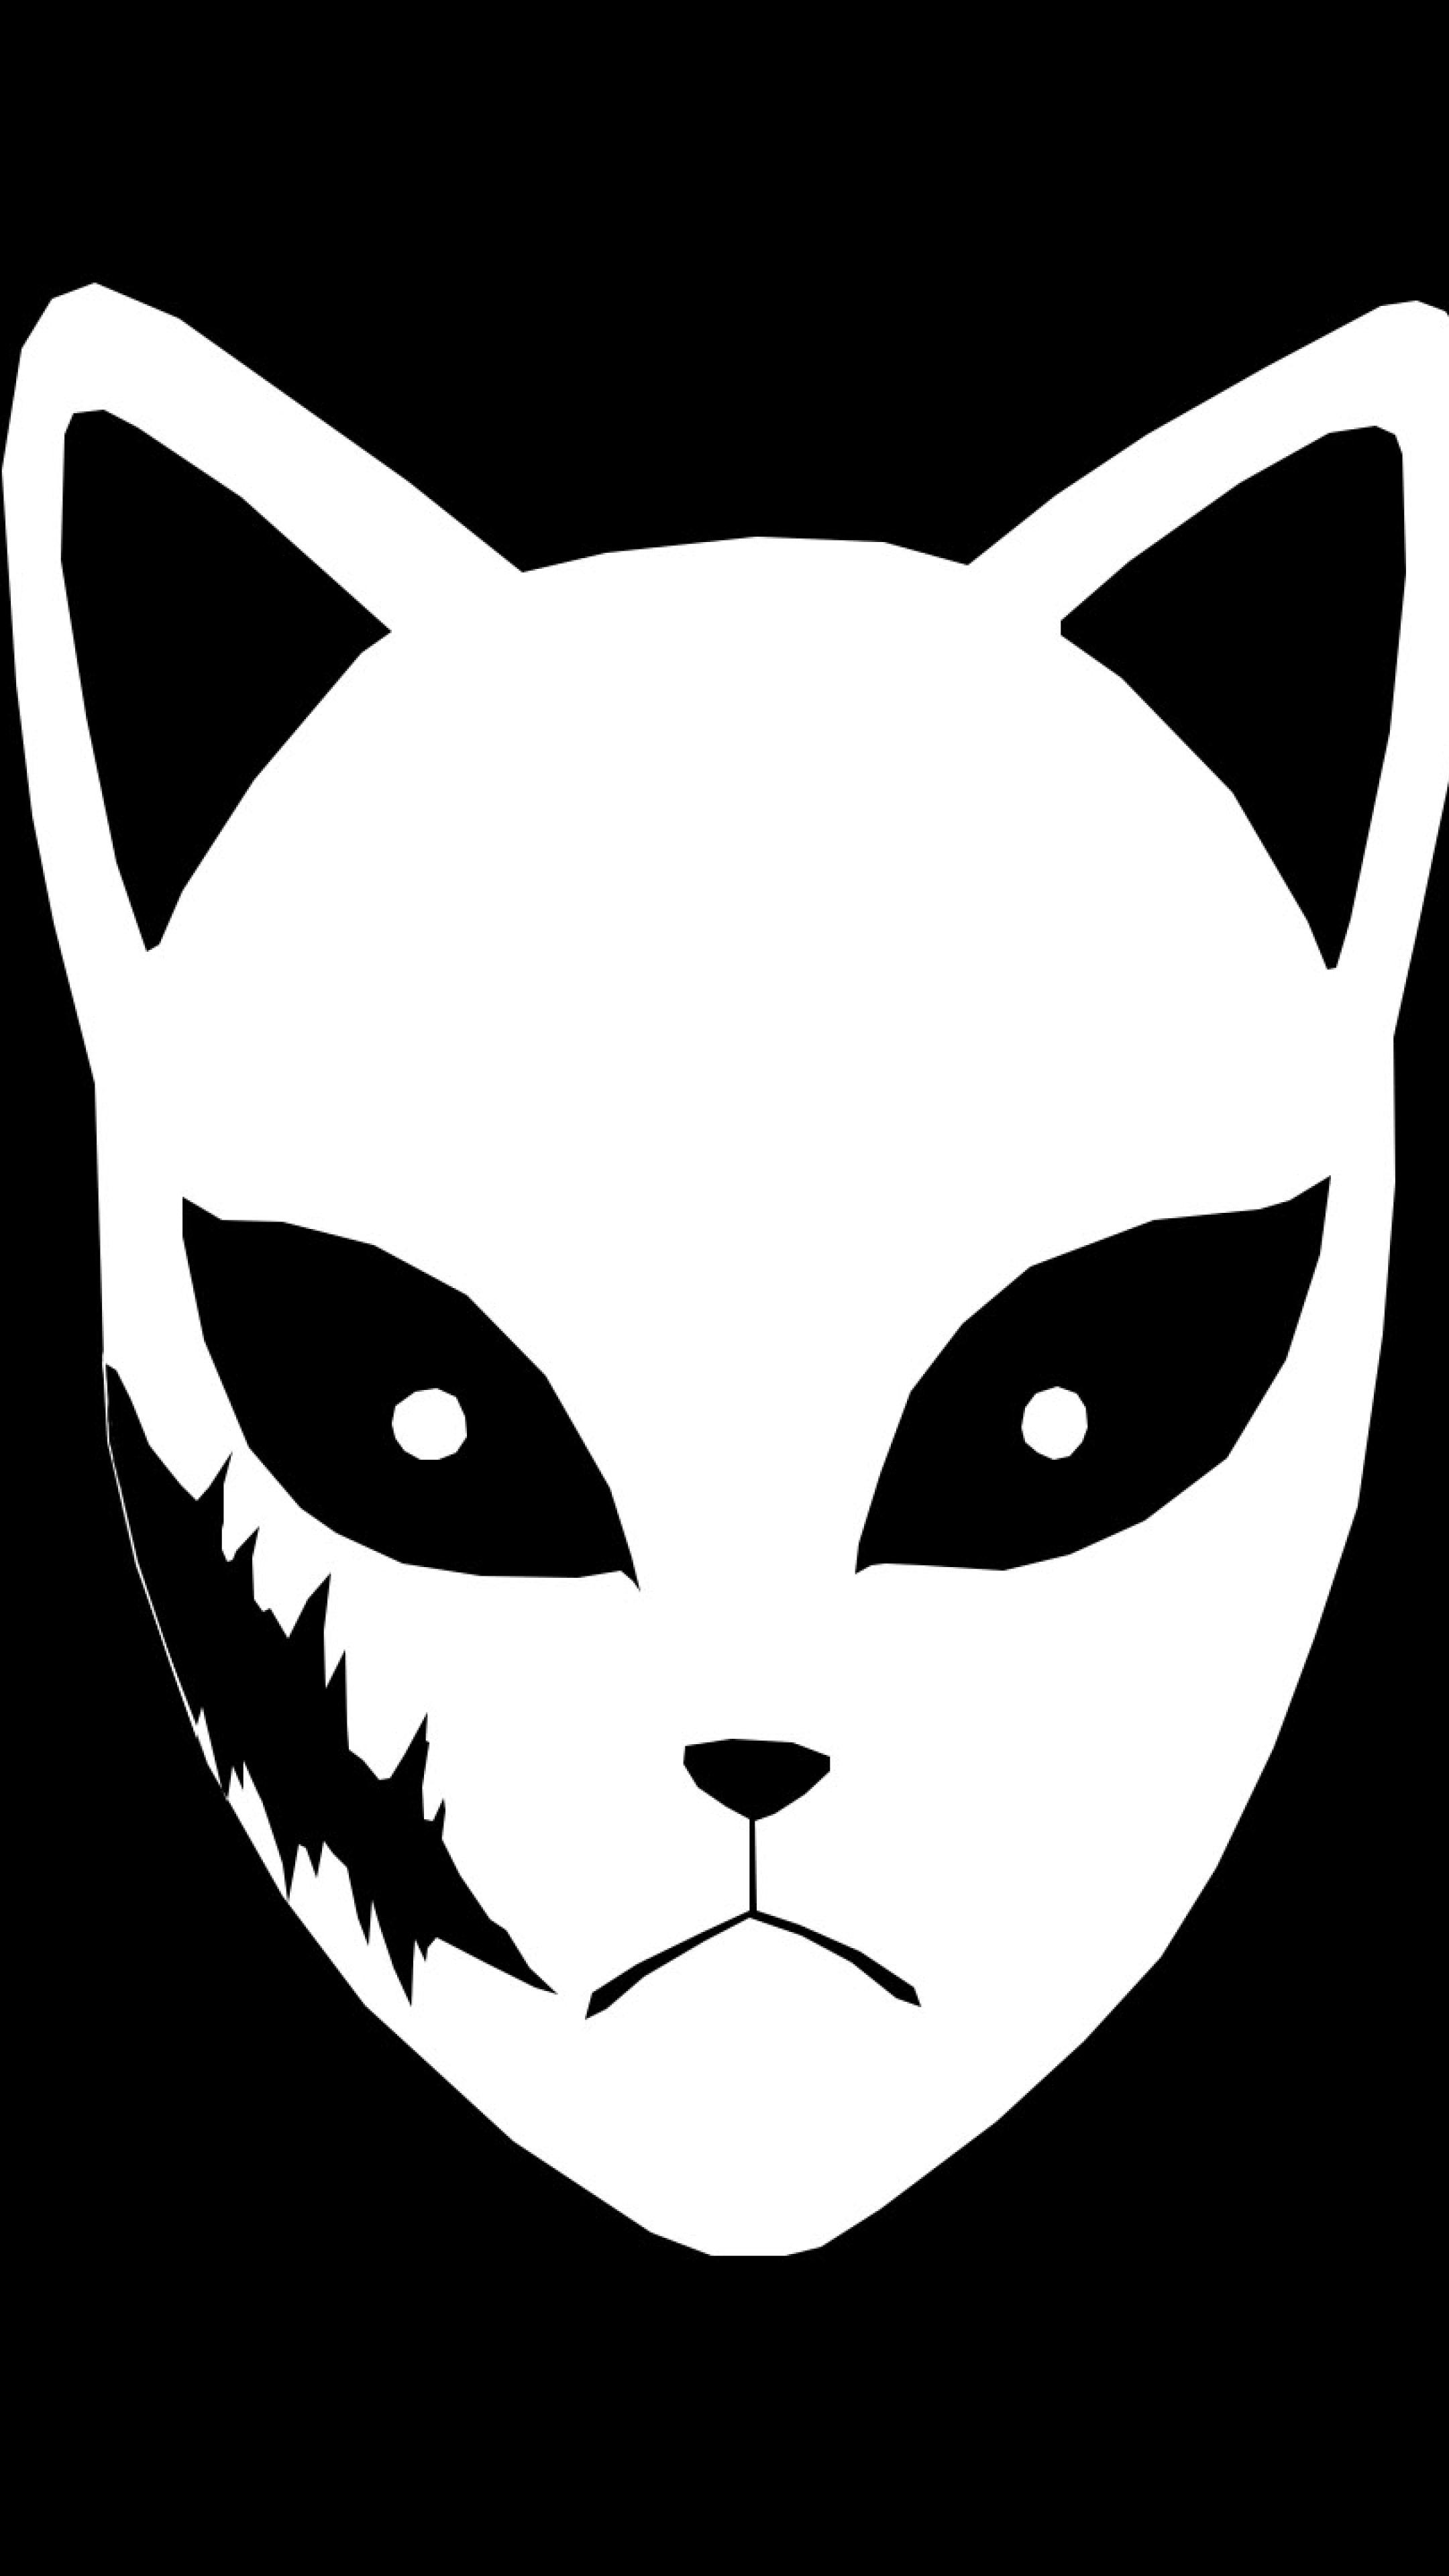 Sabito Mask Wallpaper in 2160x3840 Resolution